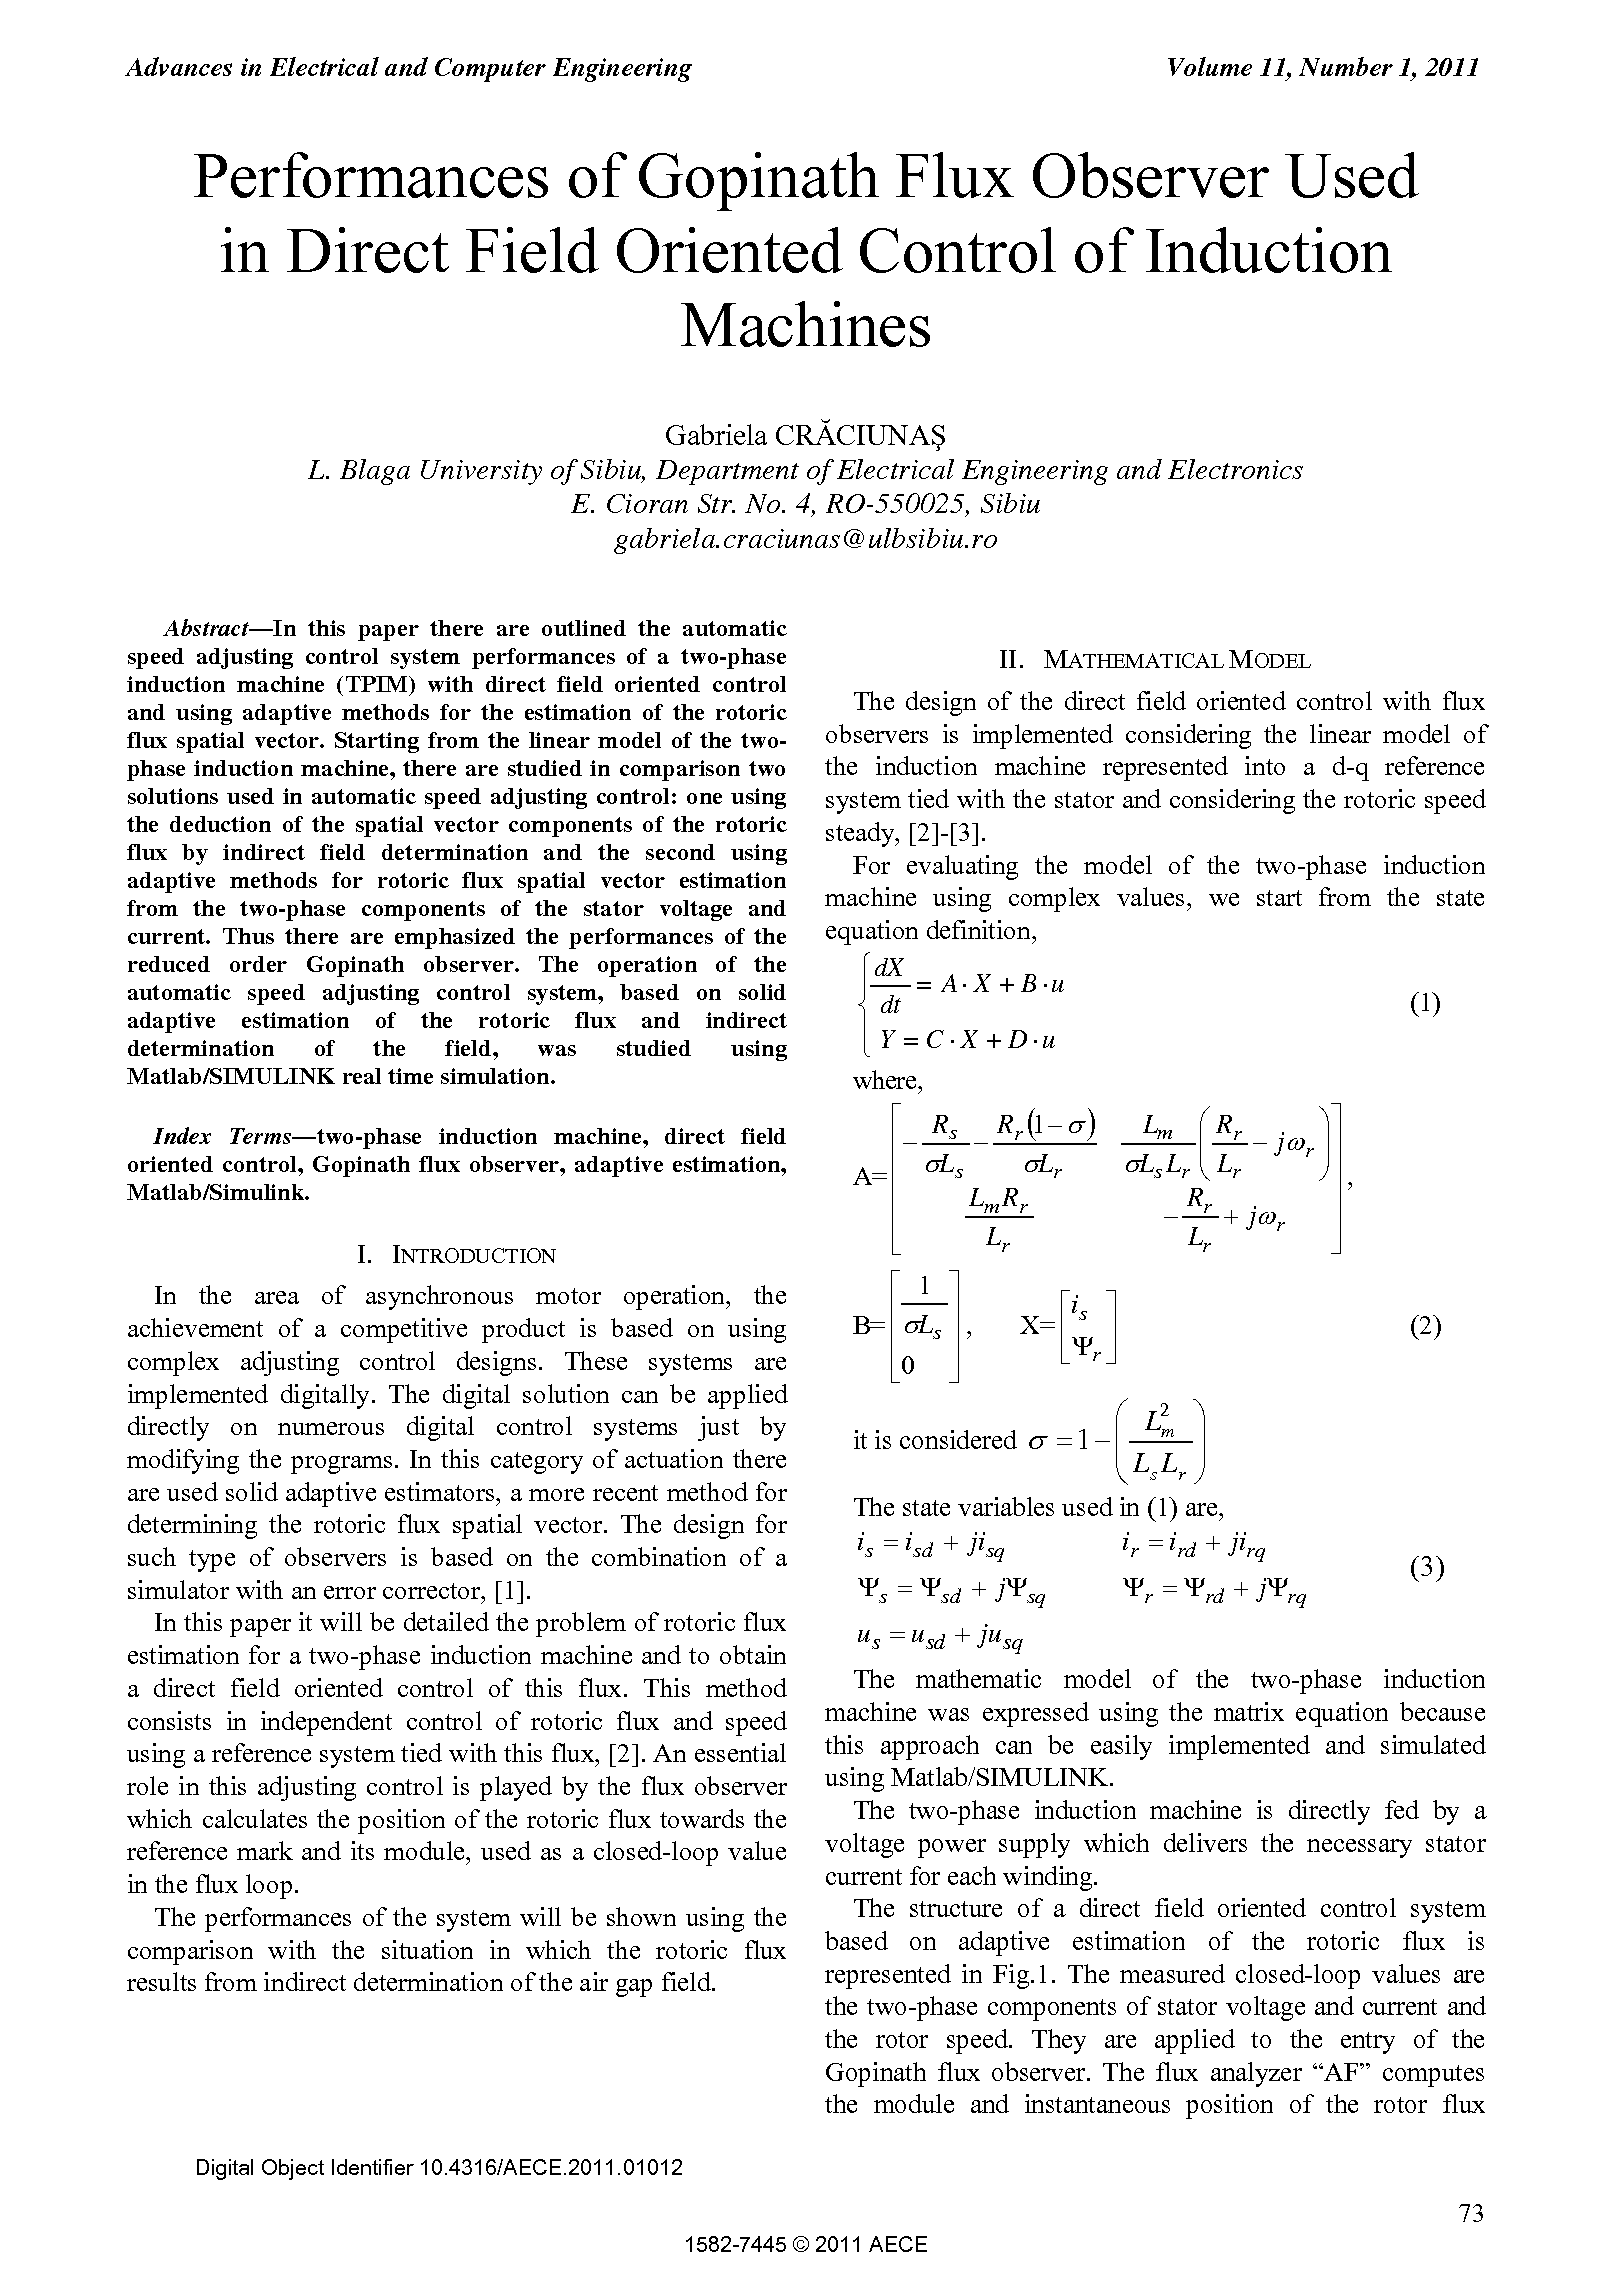 PDF Quickview for paper with DOI:10.4316/AECE.2011.01012